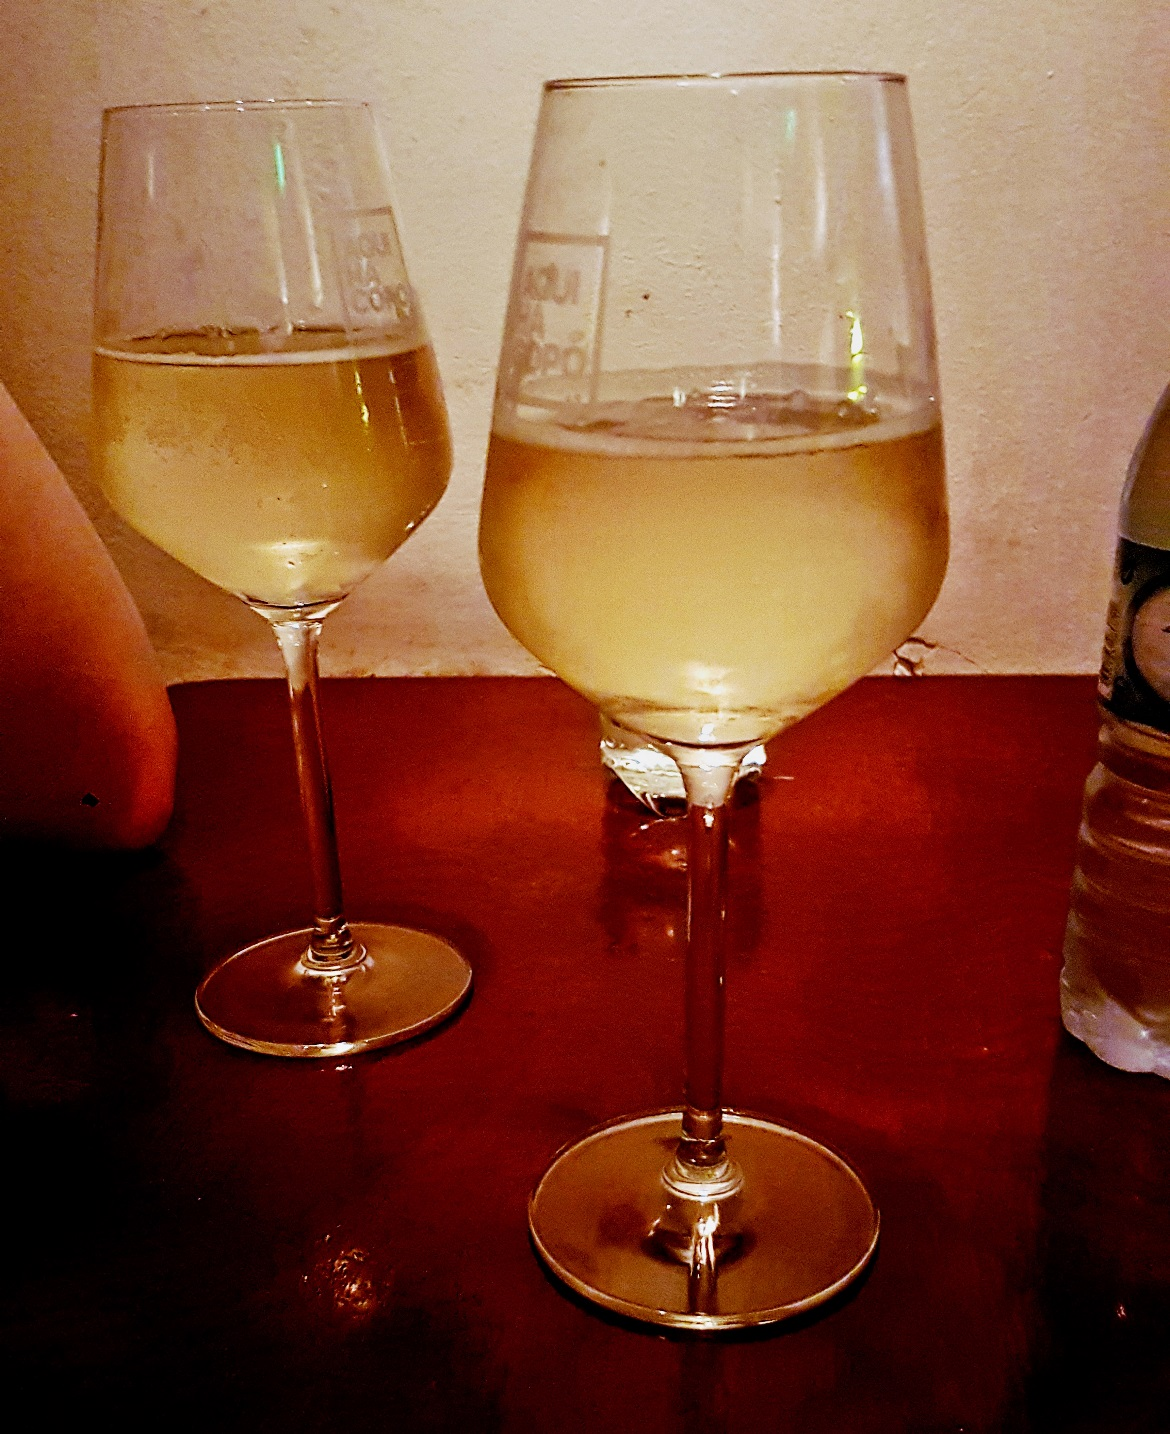 Vinho Verde at Clube da Esquina - Food and Drink in Lisbon, review by BeckyBecky Blogs